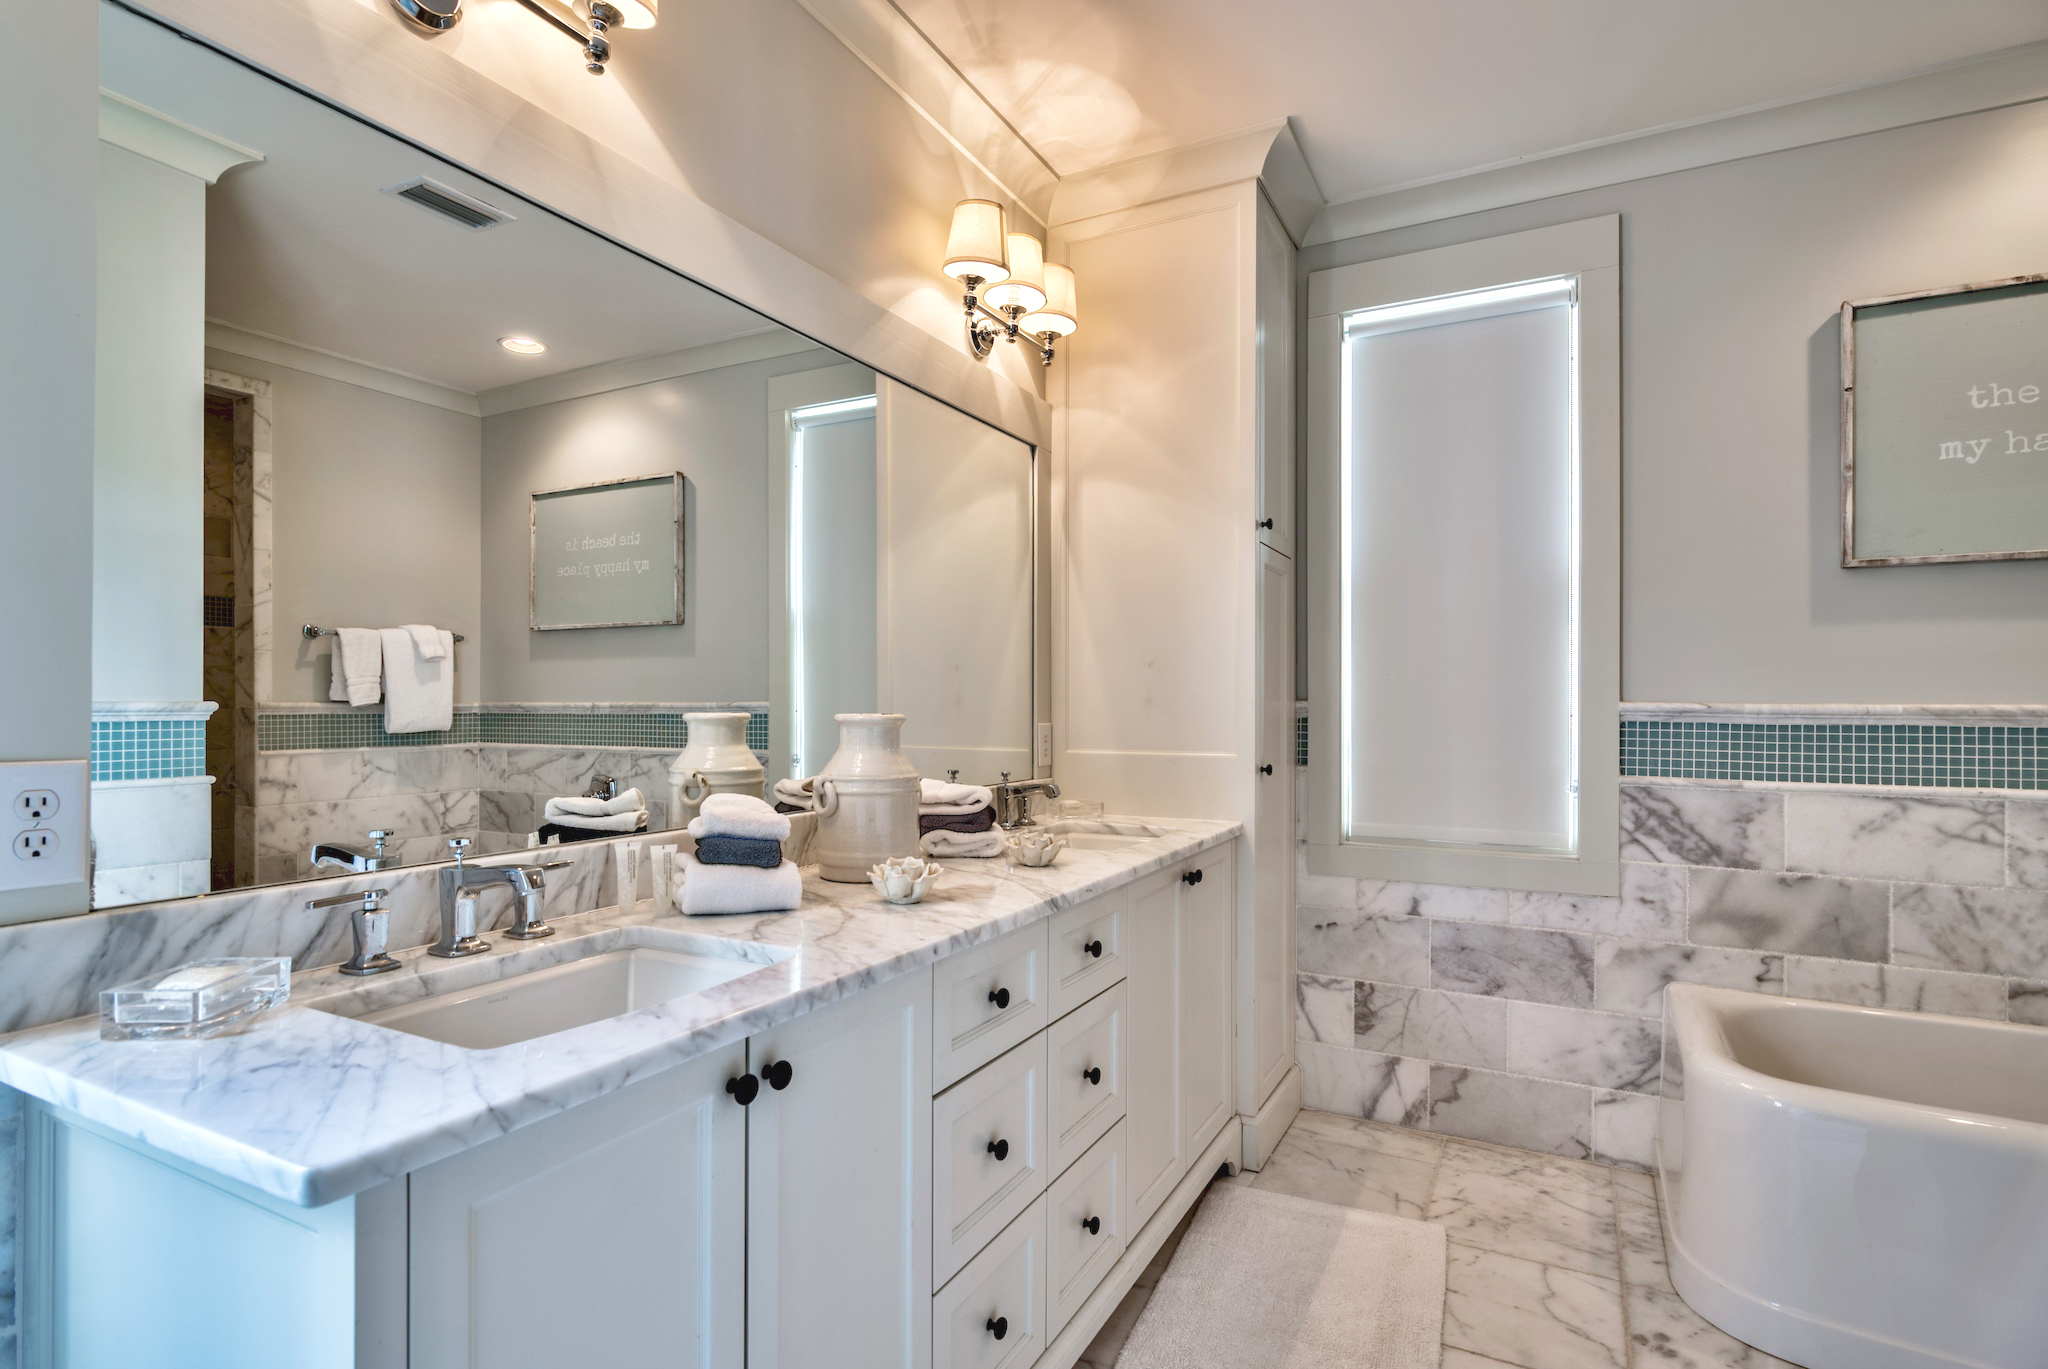 Luxurious Master bathroom with double sinks and soaking tub